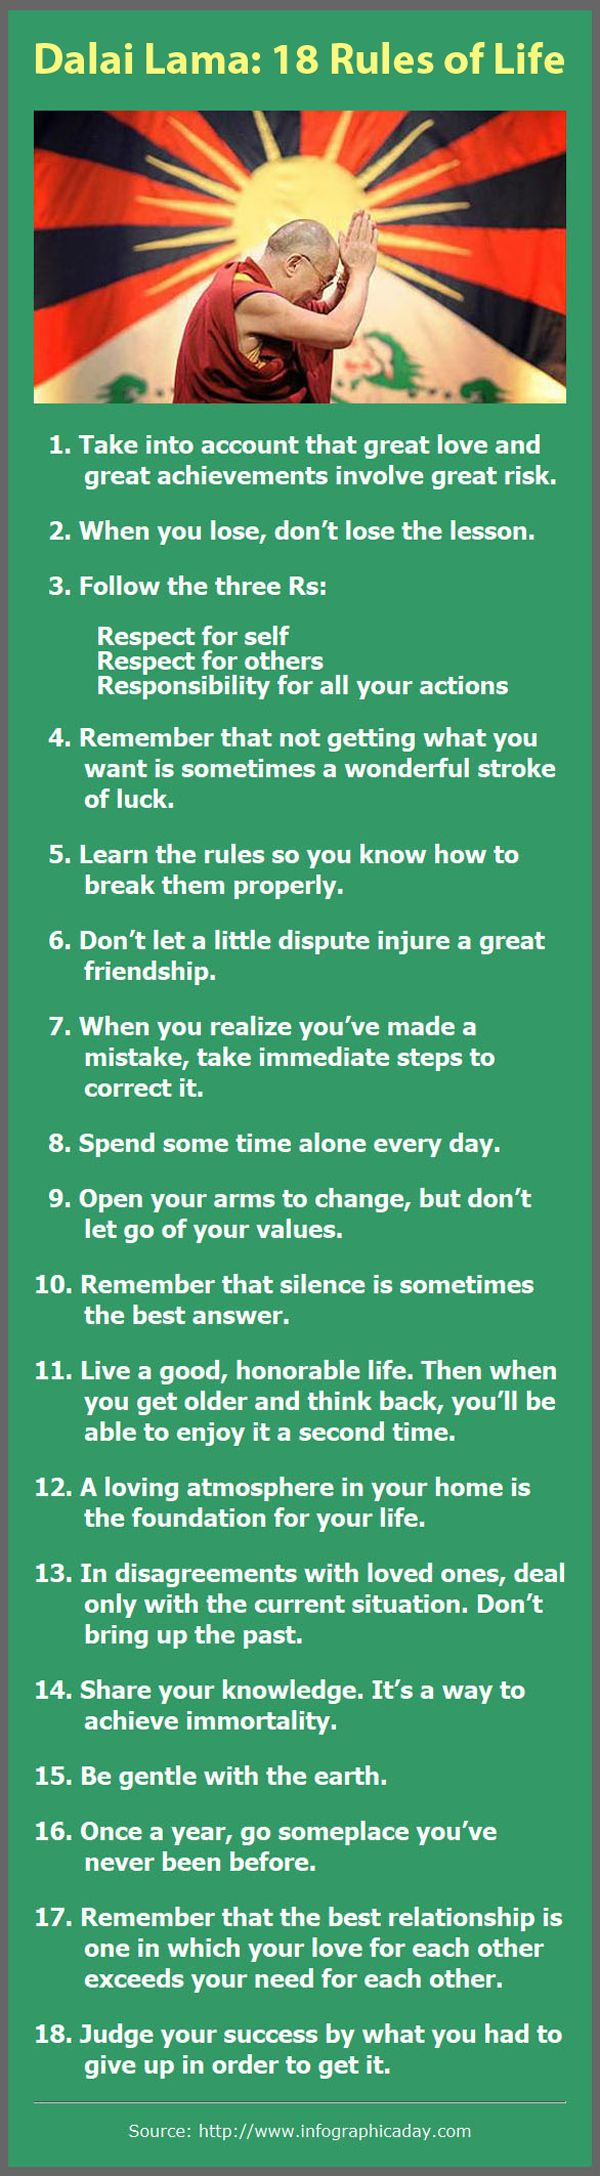 Dalai Lama: 18 Rules of Life - 1. Take into account that great love and great achievements involve great risk. 2. When you lose, don't lose the lesson. 3. Remember that not getting what you want is sometimes a wonderful stroke of luck. more . . .